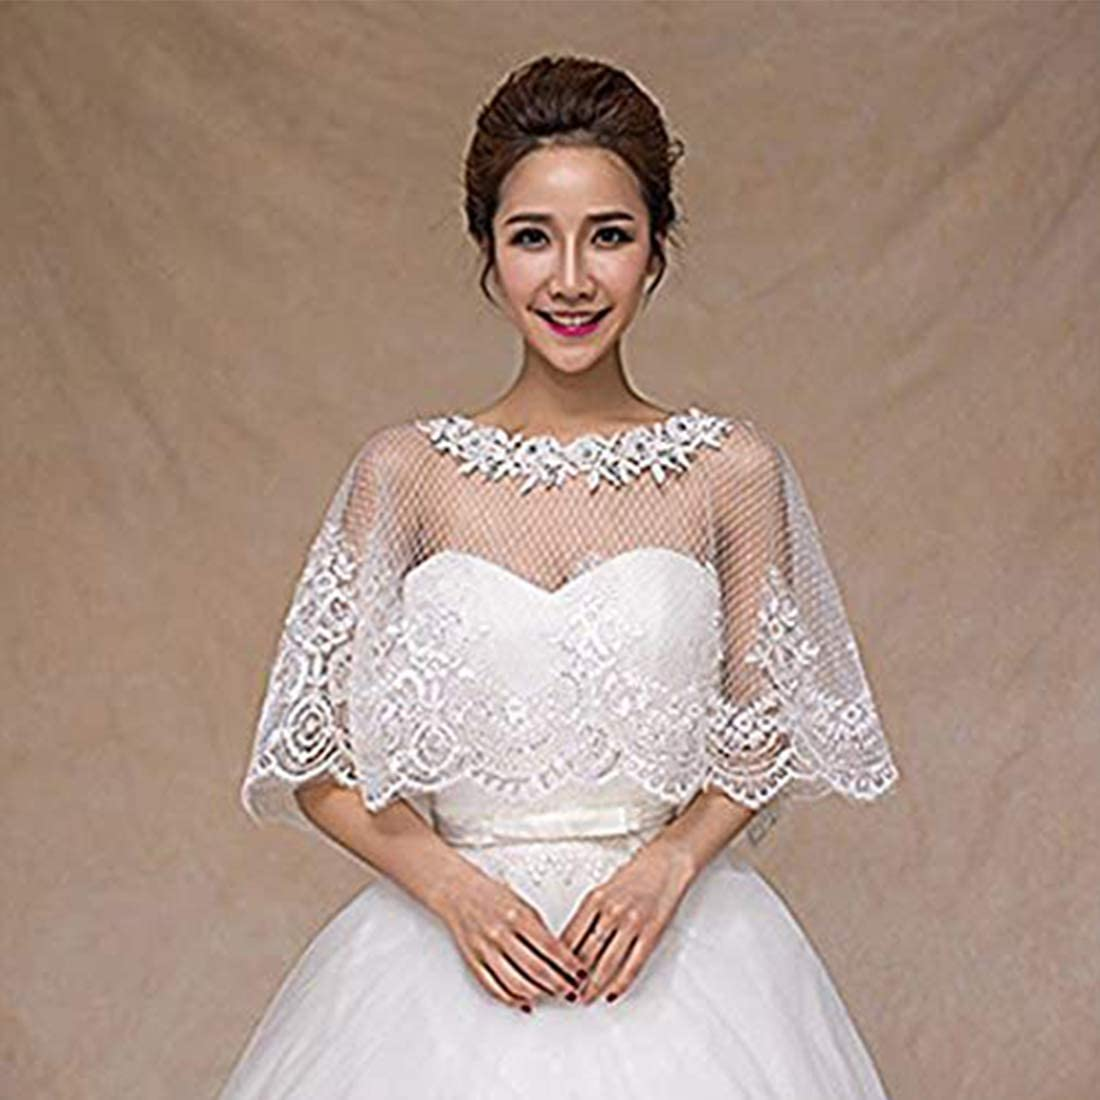 Embroidered Lace Tulle wedding shawls wraps for bride Wedding dress cover up